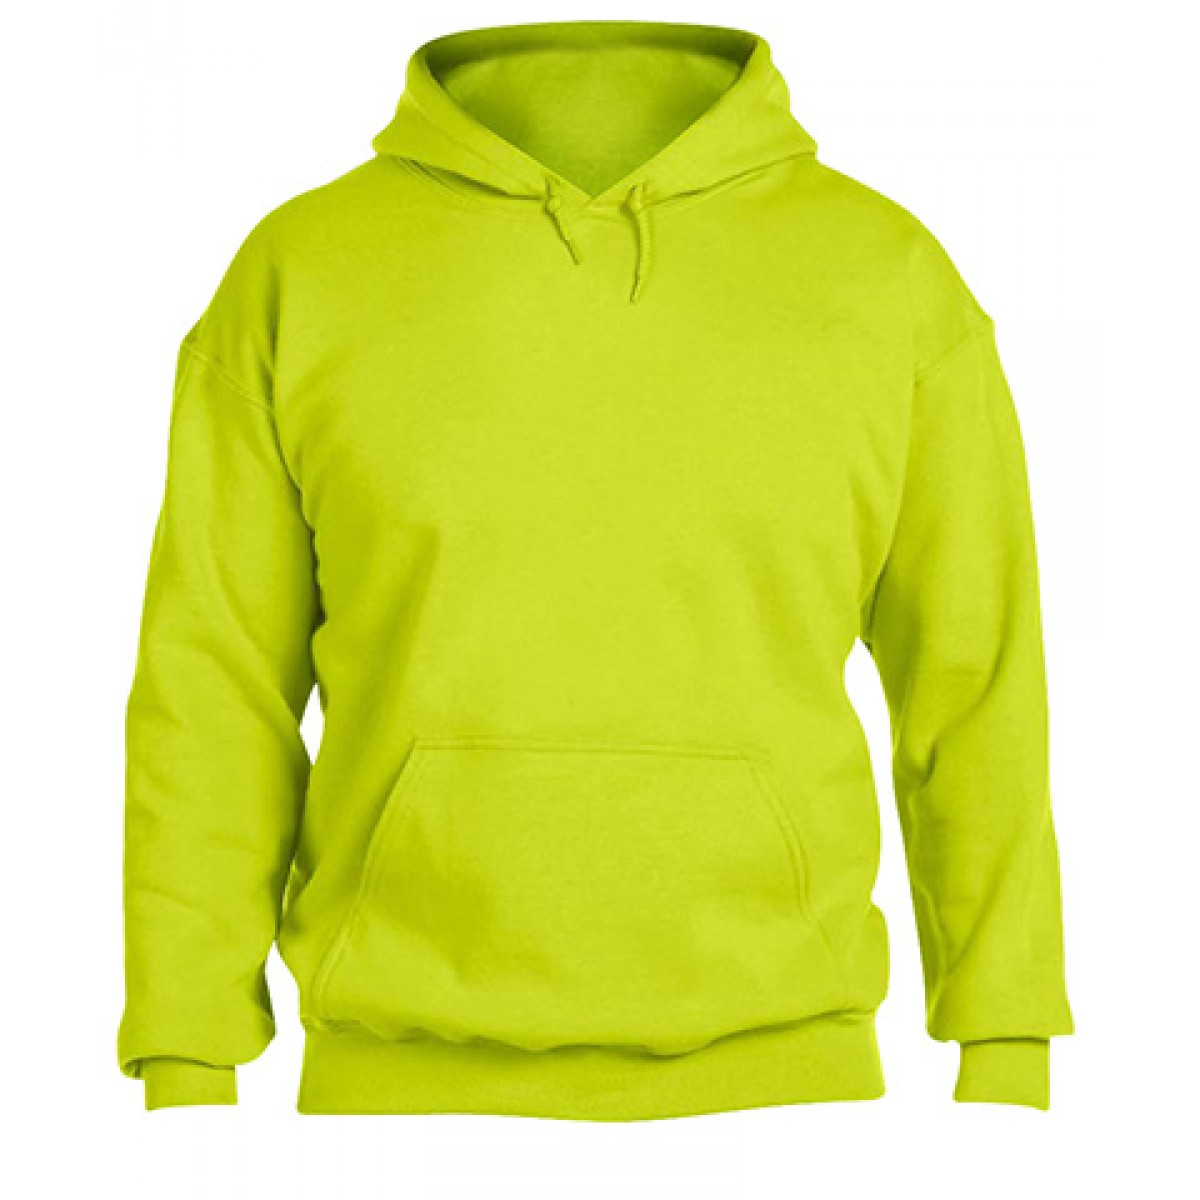 Hooded Sweatshirt 50/50 Heavy Blend Safety Green